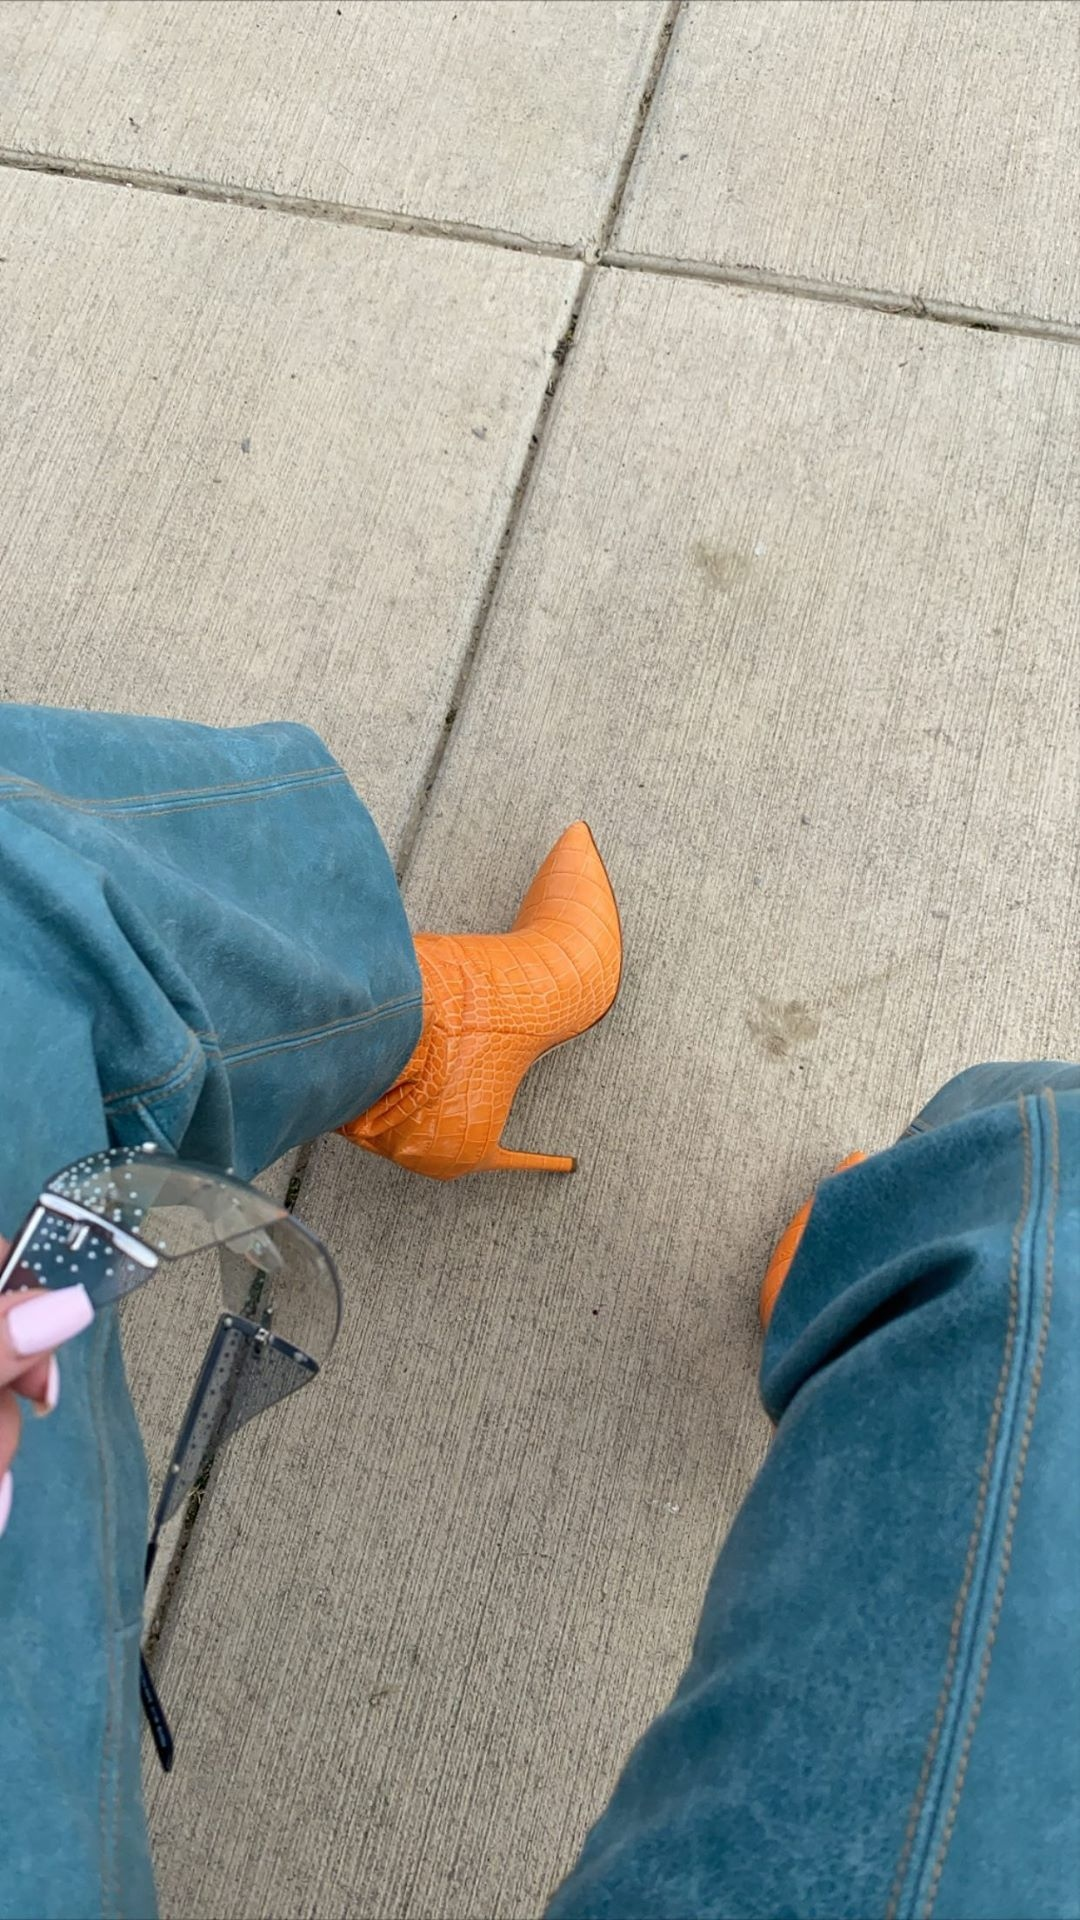 Kylie Jenner wearing narrow orange leather boots with ice pick heel